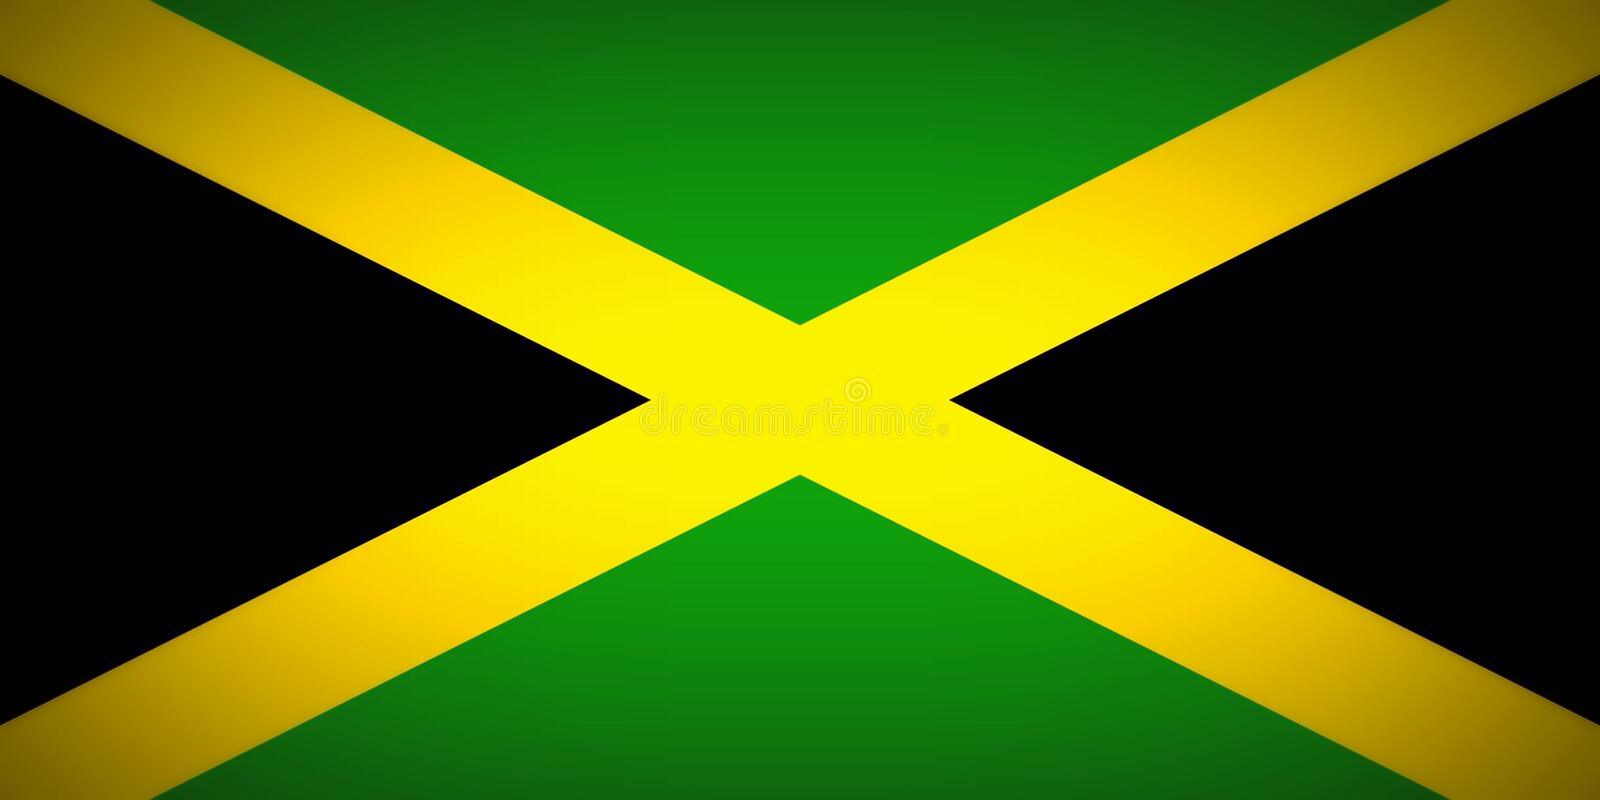 Flag of Jamaica. National flag of island country Jamaica vector illustration